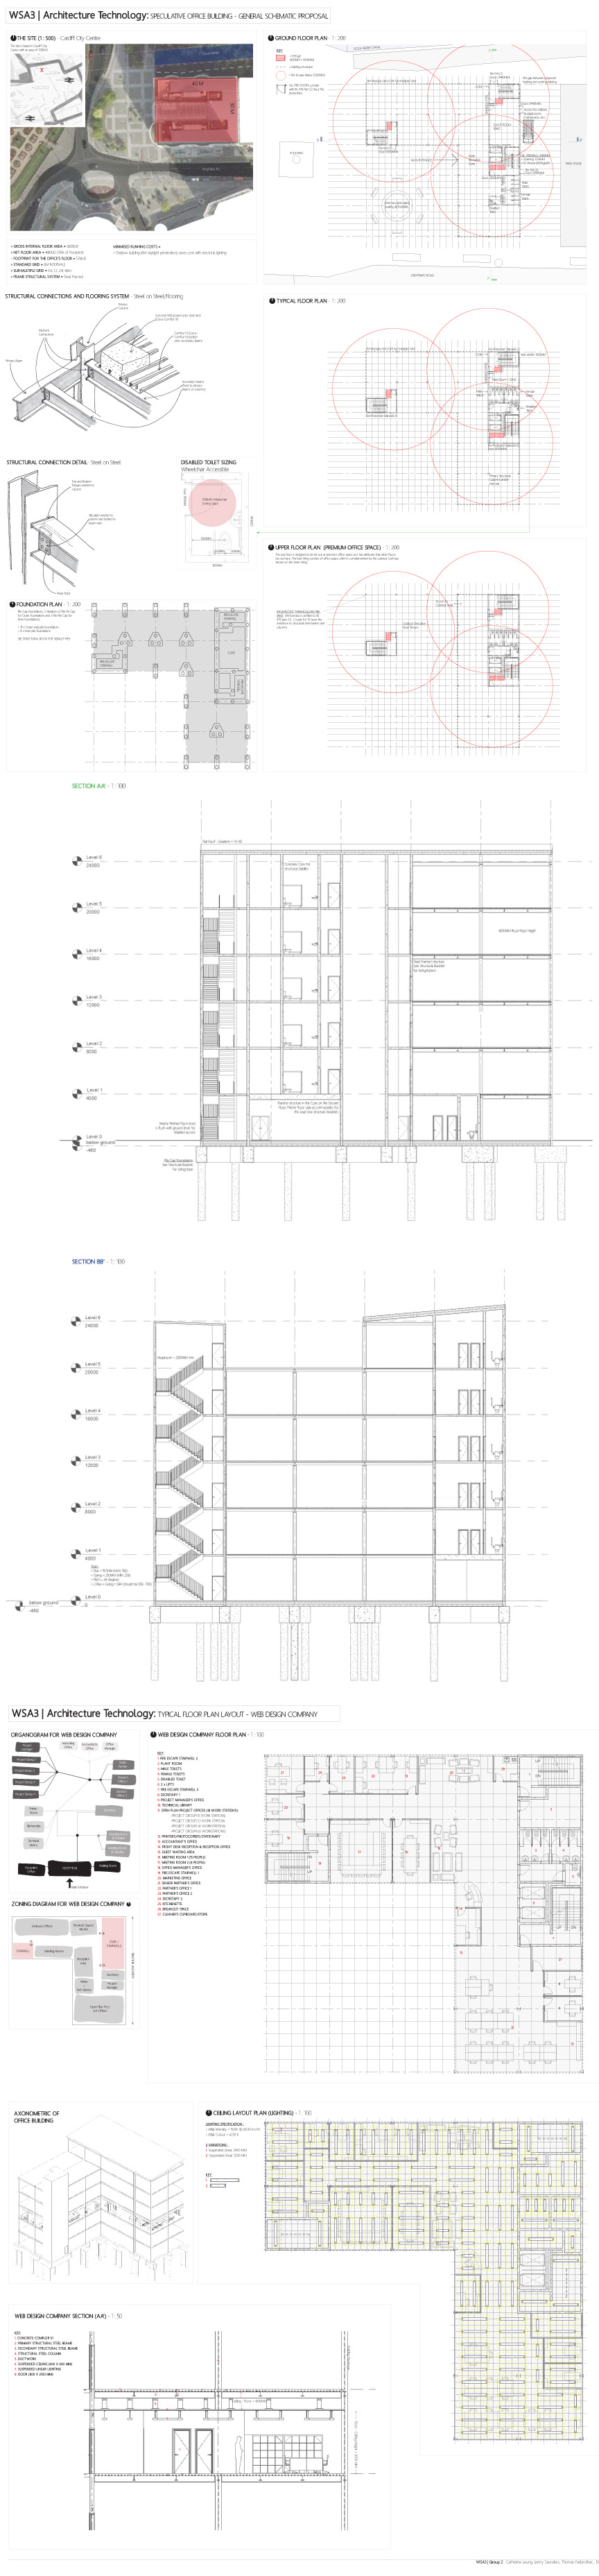 Architectural Technology 2012 Schematic Proposals For A Hvac Drawing Checklist This Involved Resolving Structural Systems Organisational And Zoning Layouts Ventilation Duct Sizes Ceiling Lighting Plans